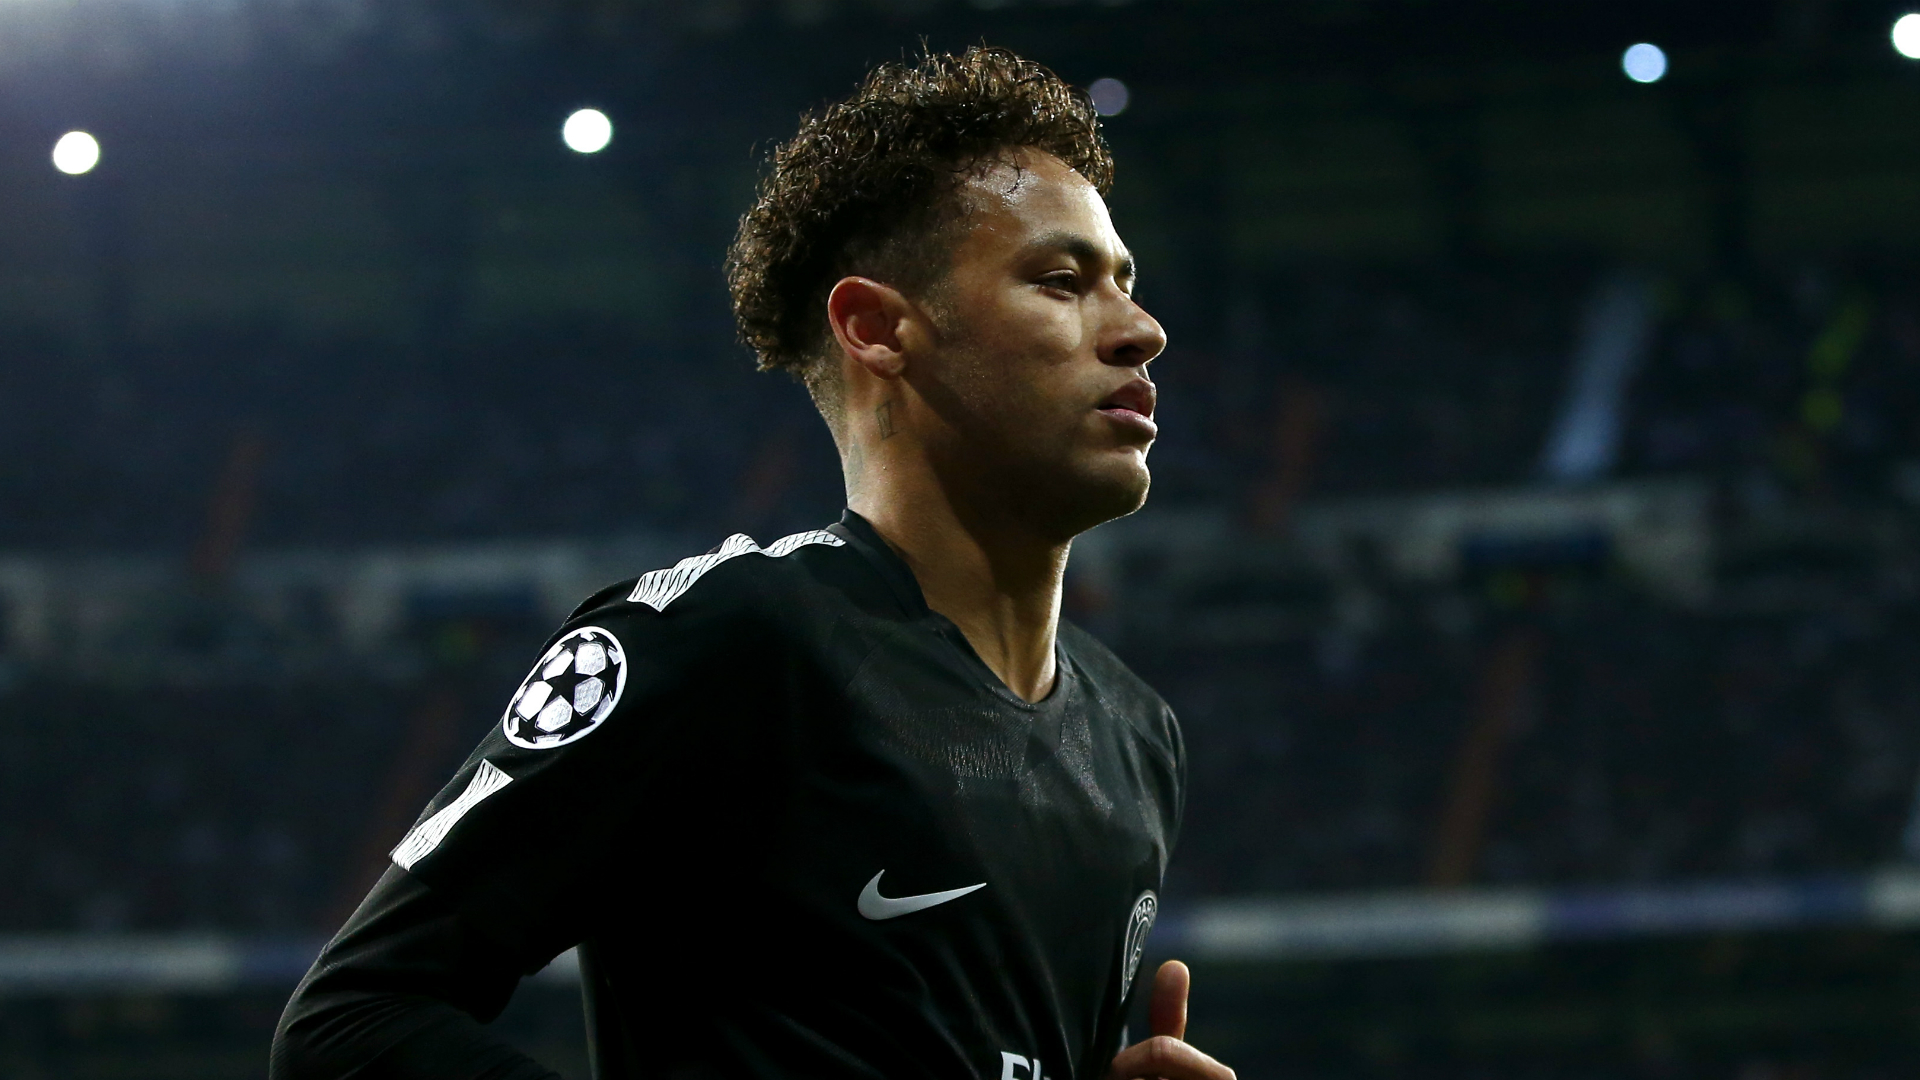 Uefa to investigate Neymar's VAR criticism after PSG defeat